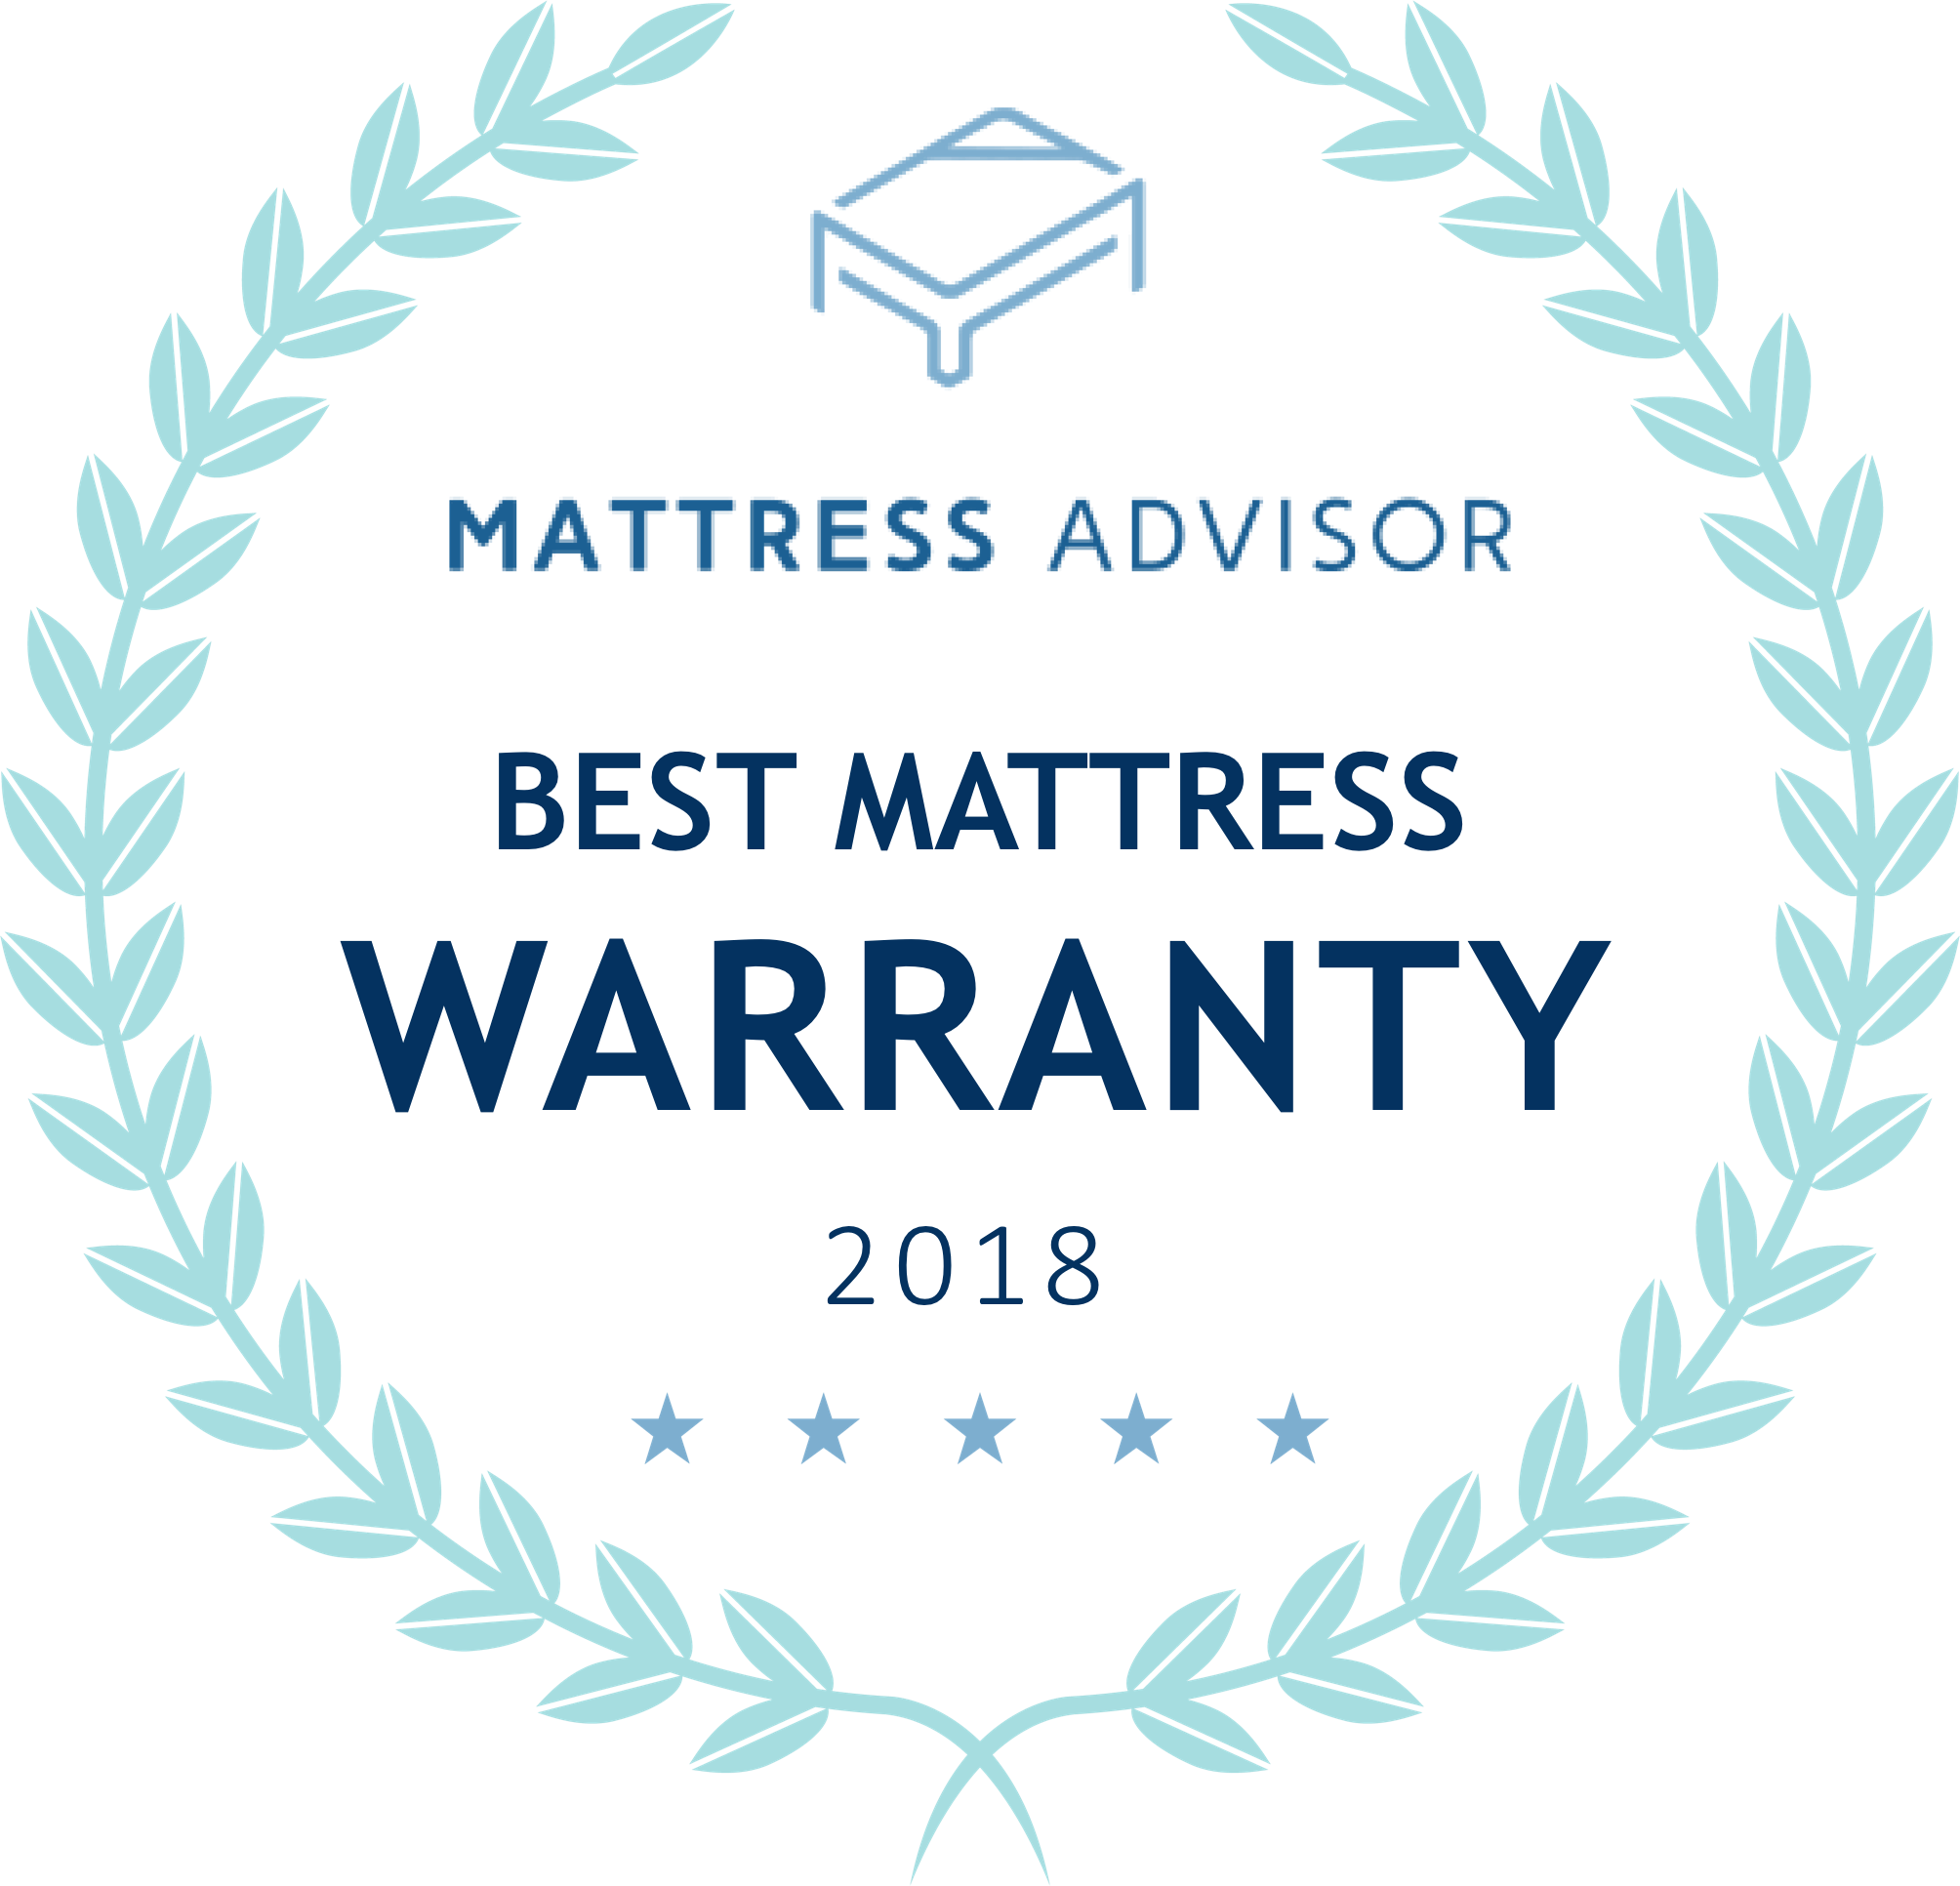 Best Mattress Warranty Award for 2018